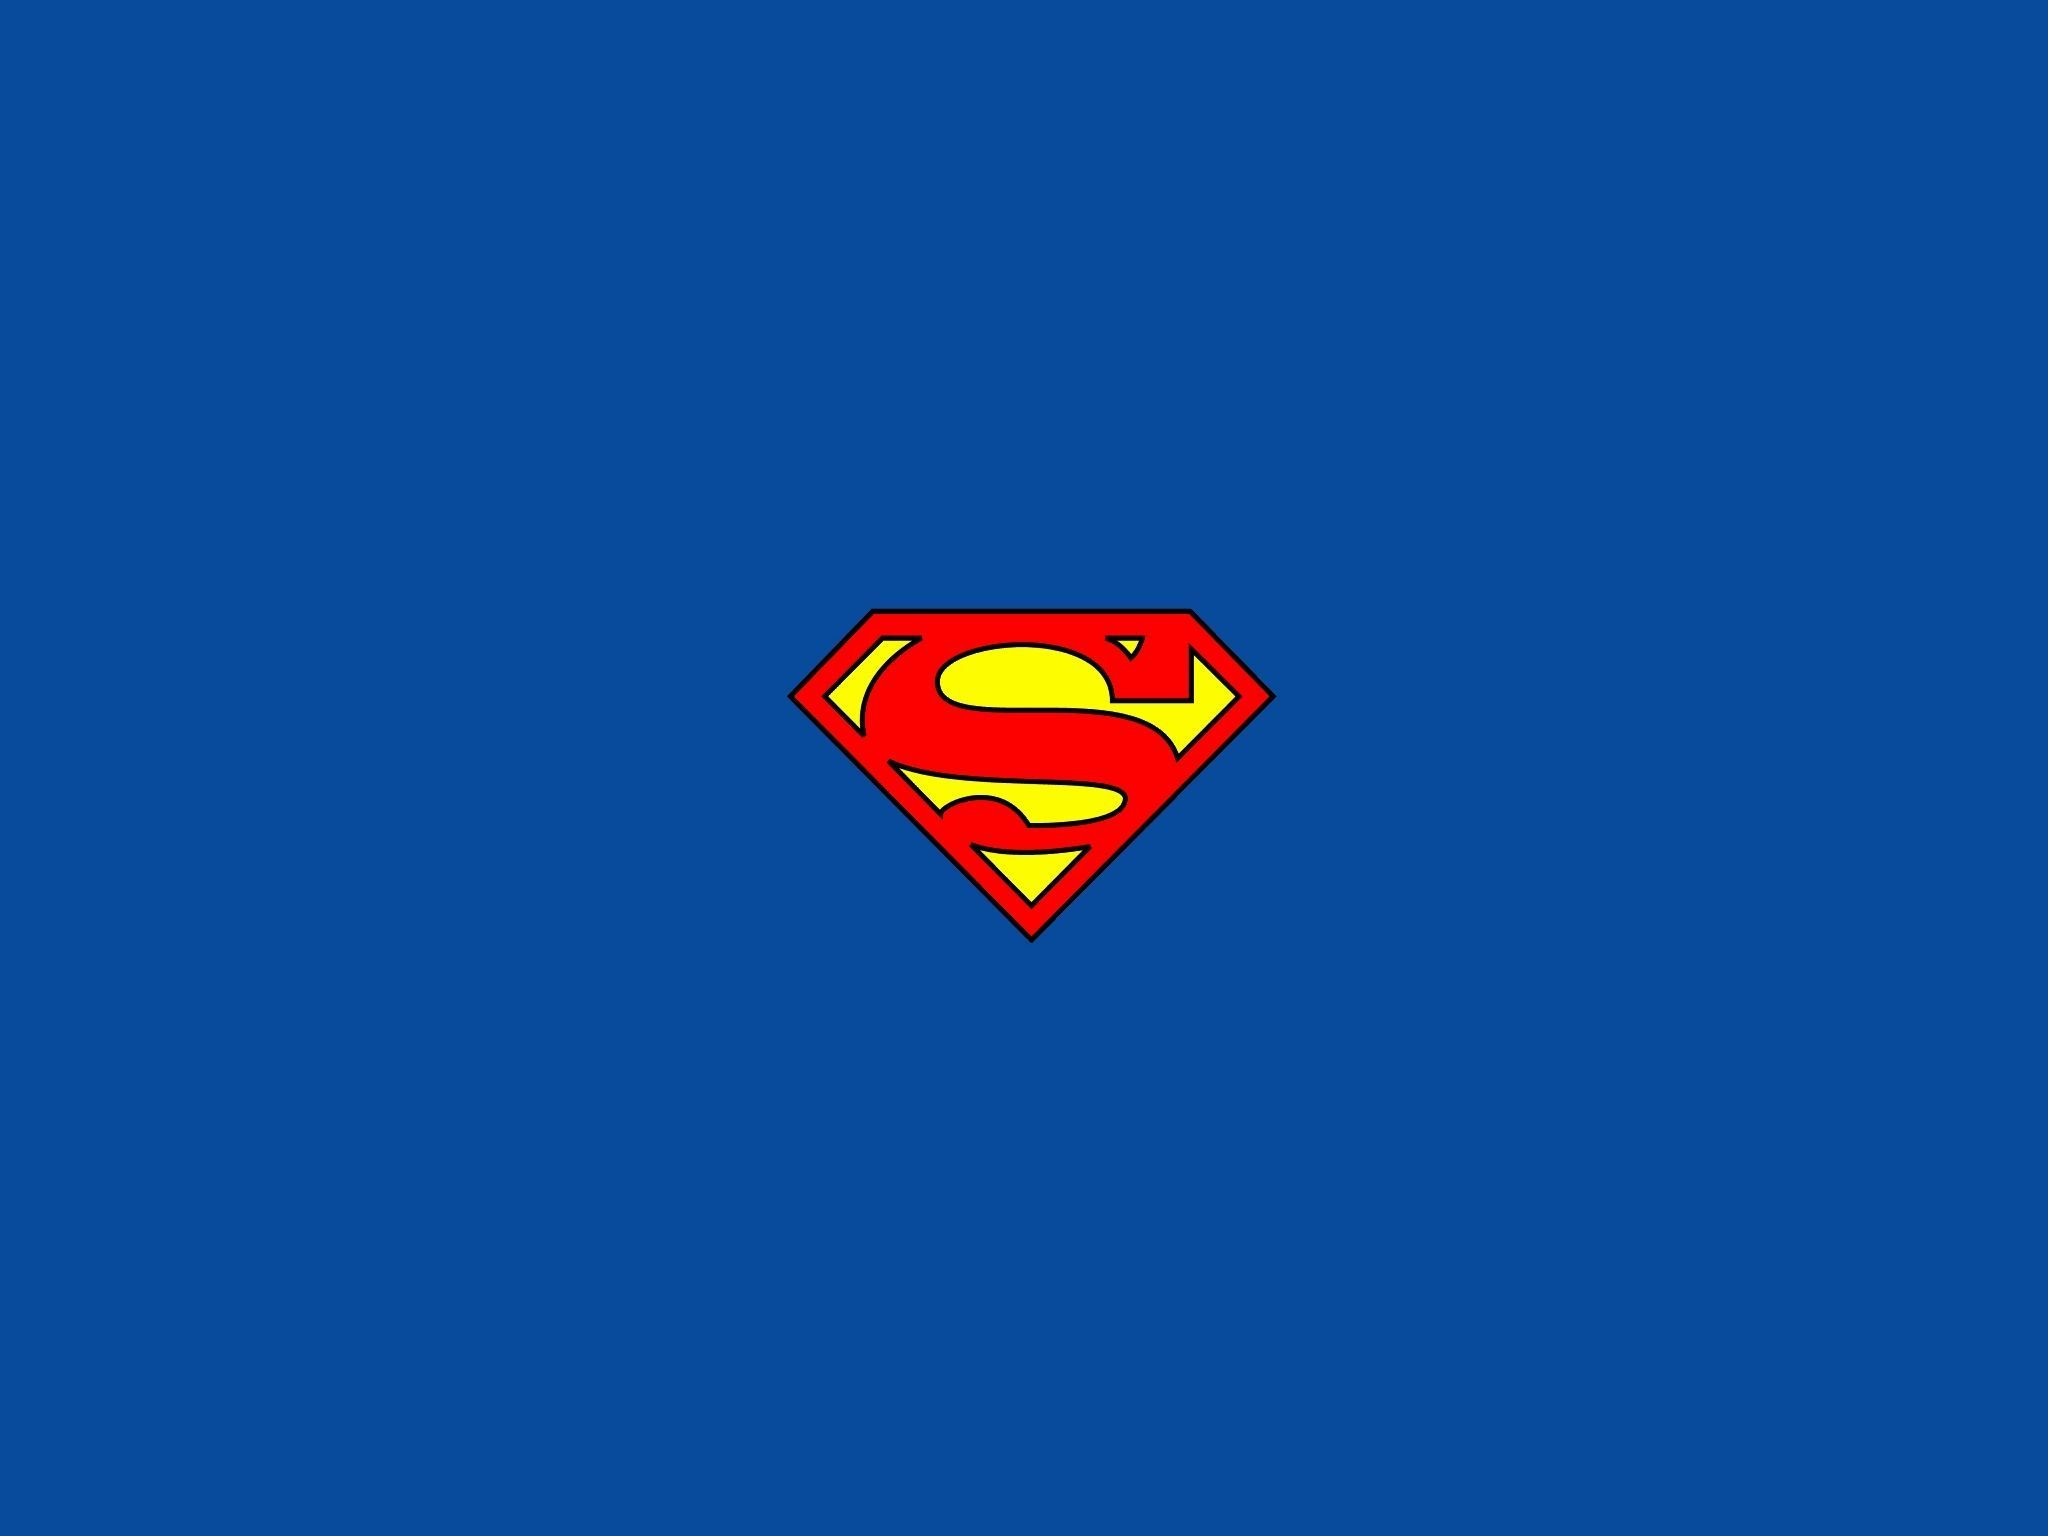 Xiaomi Wallpaper With Logo: Superman Emblem Wallpaper ·①